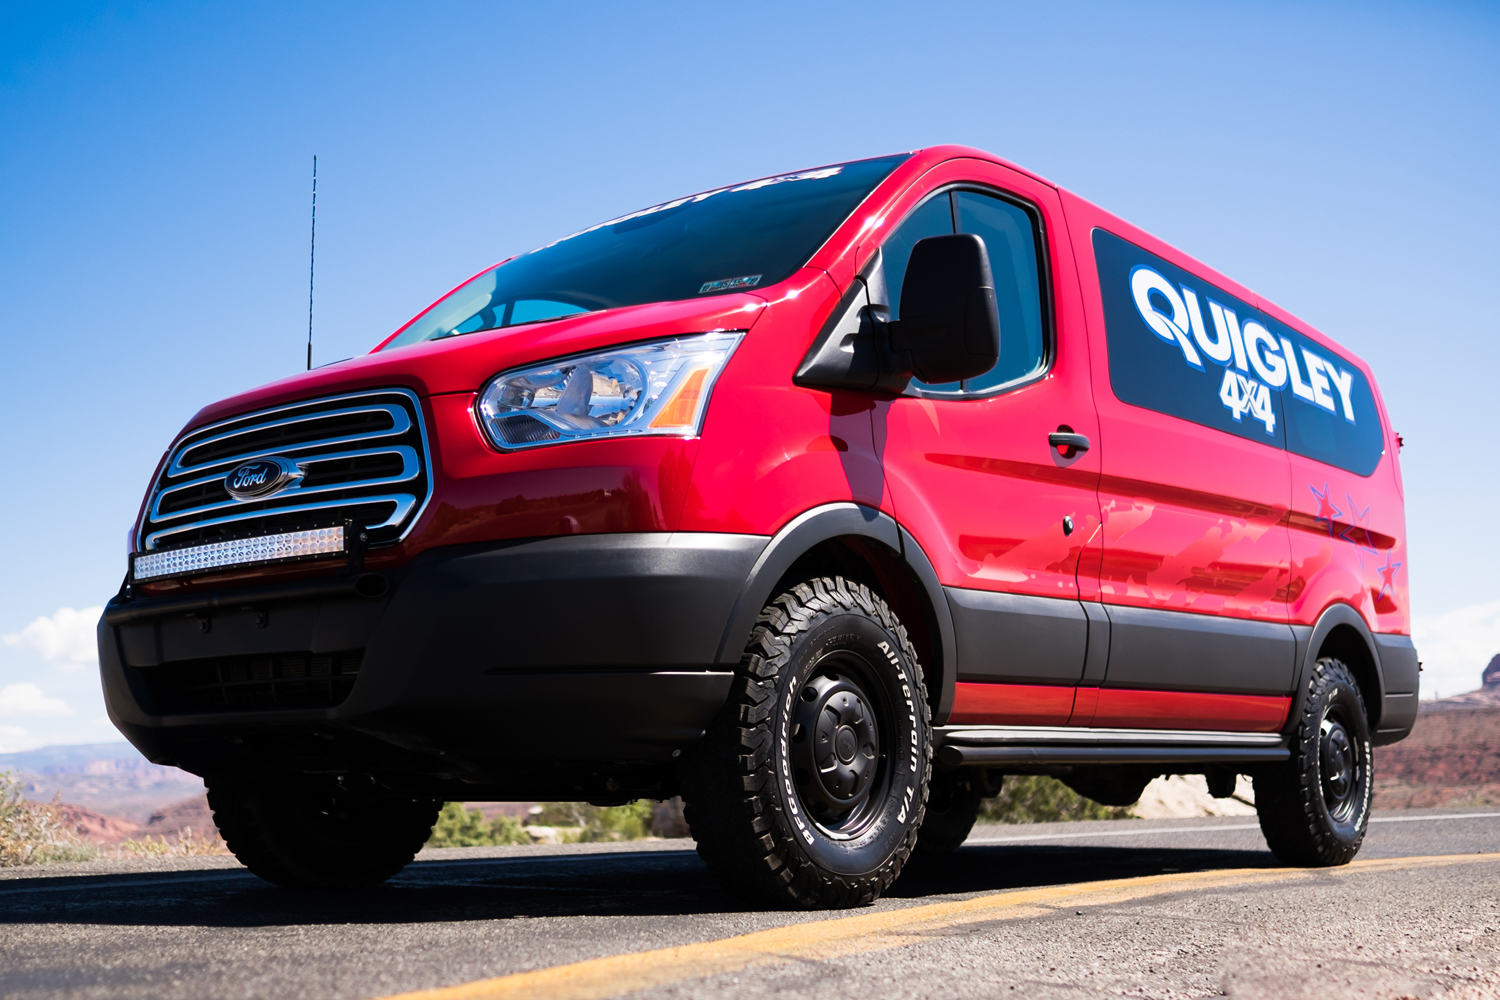 Quigley Motors 4x4 Ford Transit Takes On The 2015 Easter Jeep